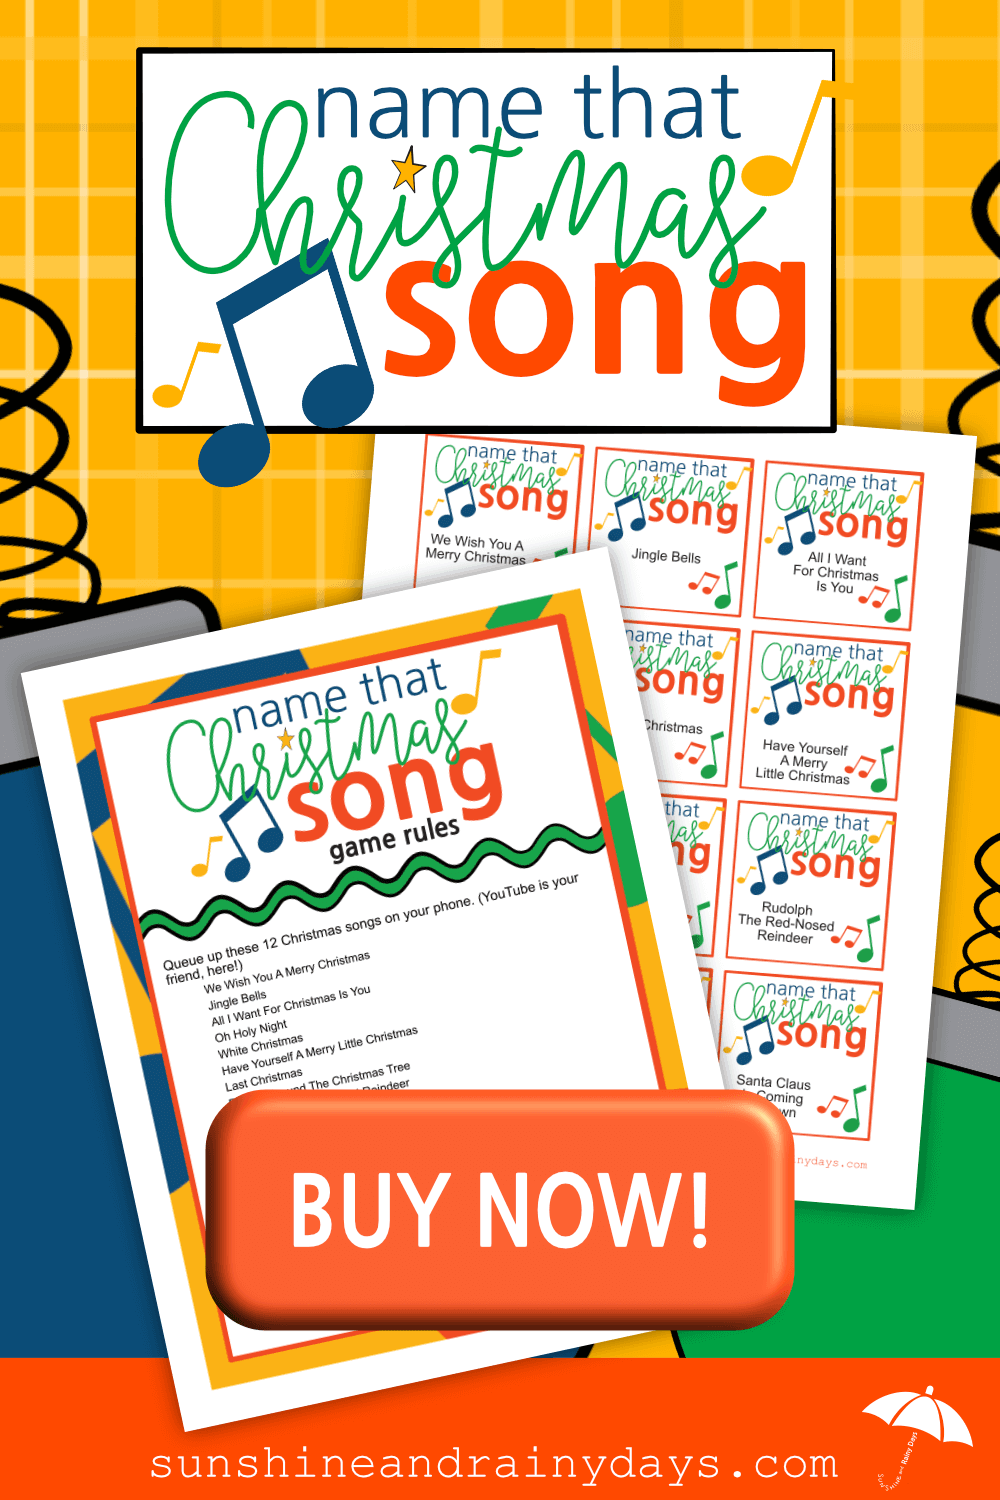 We've played Name That Song at many parties with teenagers and it seems to be a hit! With a Christmas Party coming up, we decided it was time to Christmasfy the game and dubbed it, Name That Christmas Song! Name That Song Christmas Game   Name That Christmas Song Game   Christmas Games   Christmas Printables   #ChristmasGames #ChristmasPrintables #SARD